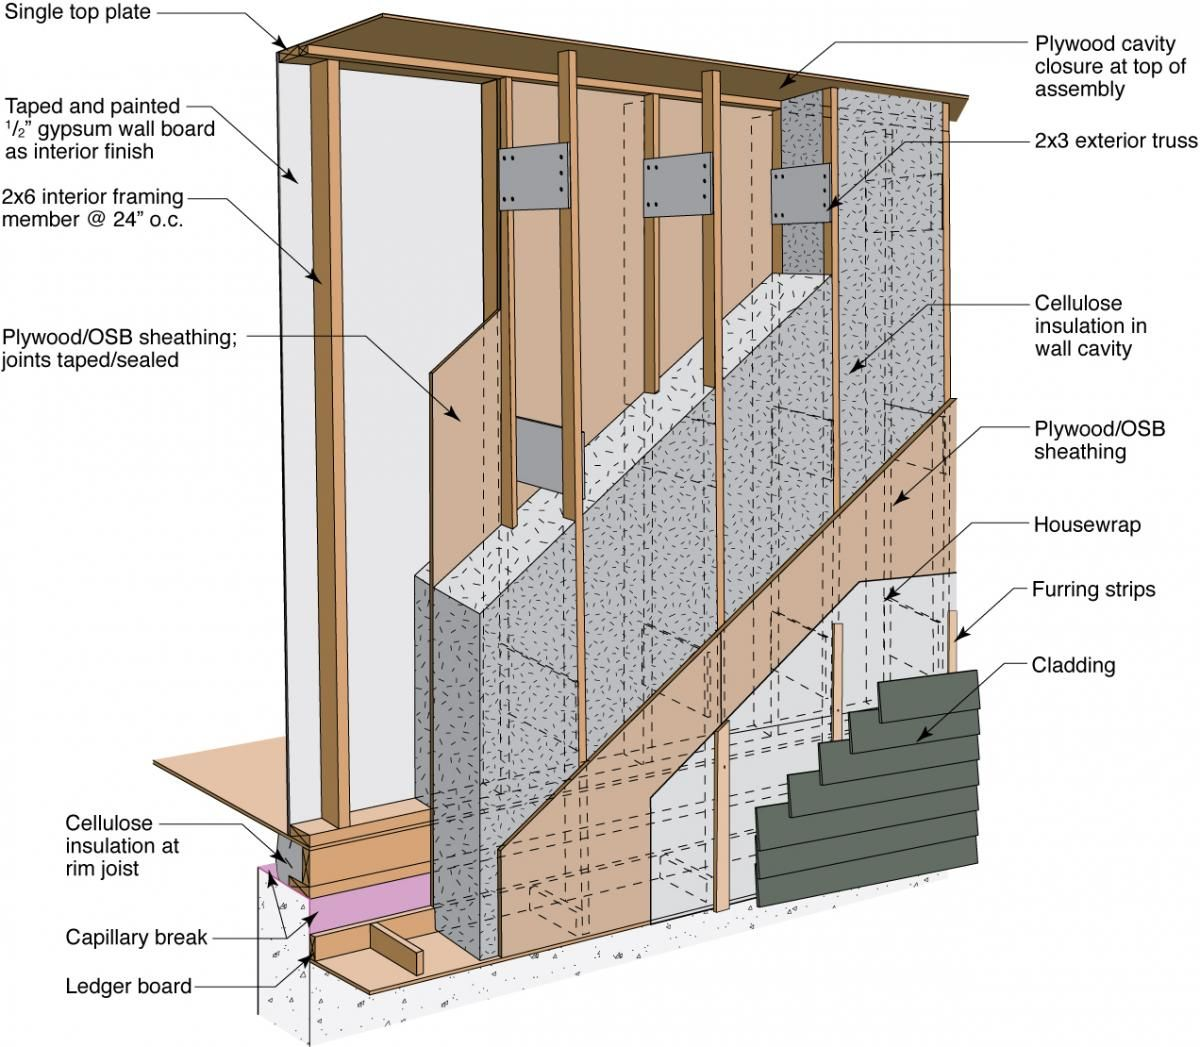 This R 36 Double Stud Wall Has A Structural 2x4 Exterior Wall And A Non Structural Interior 2x3